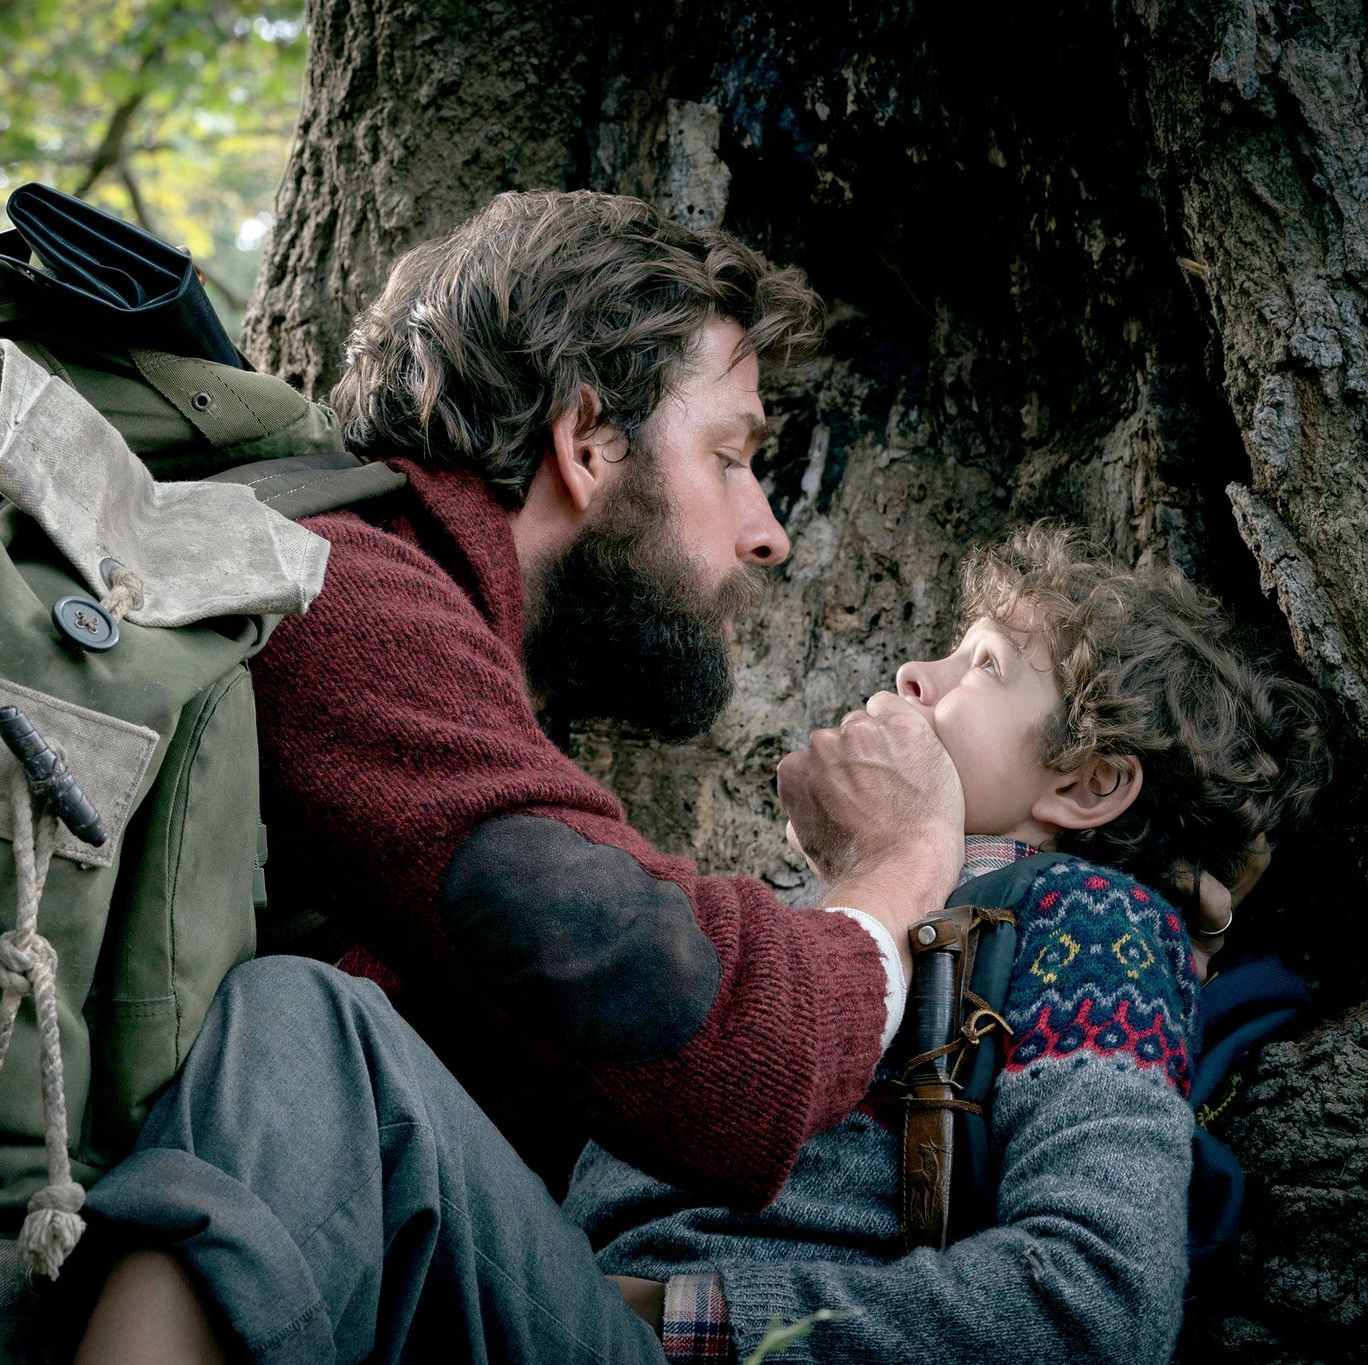 A Quiet Place A family (led by John Krasinski and Emily Blunt) silently navigate a post-apocalyptic world, stalked at every turn by monsters that hunt their prey with a supercharged sense of hearing.